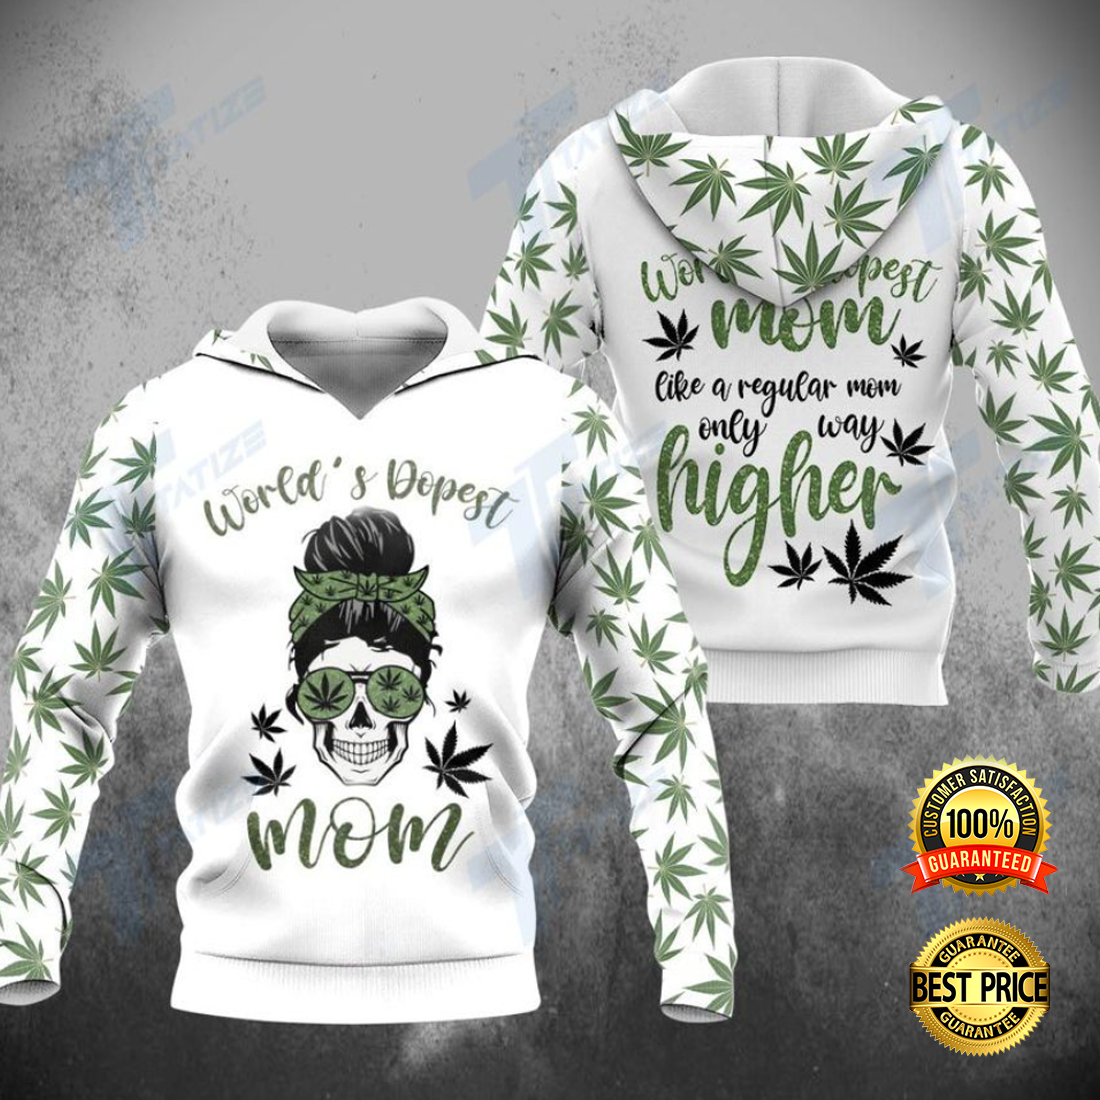 WEED WORLD'S DOPEST MOM ALL OVER PRINTED 3D HOODIE 4